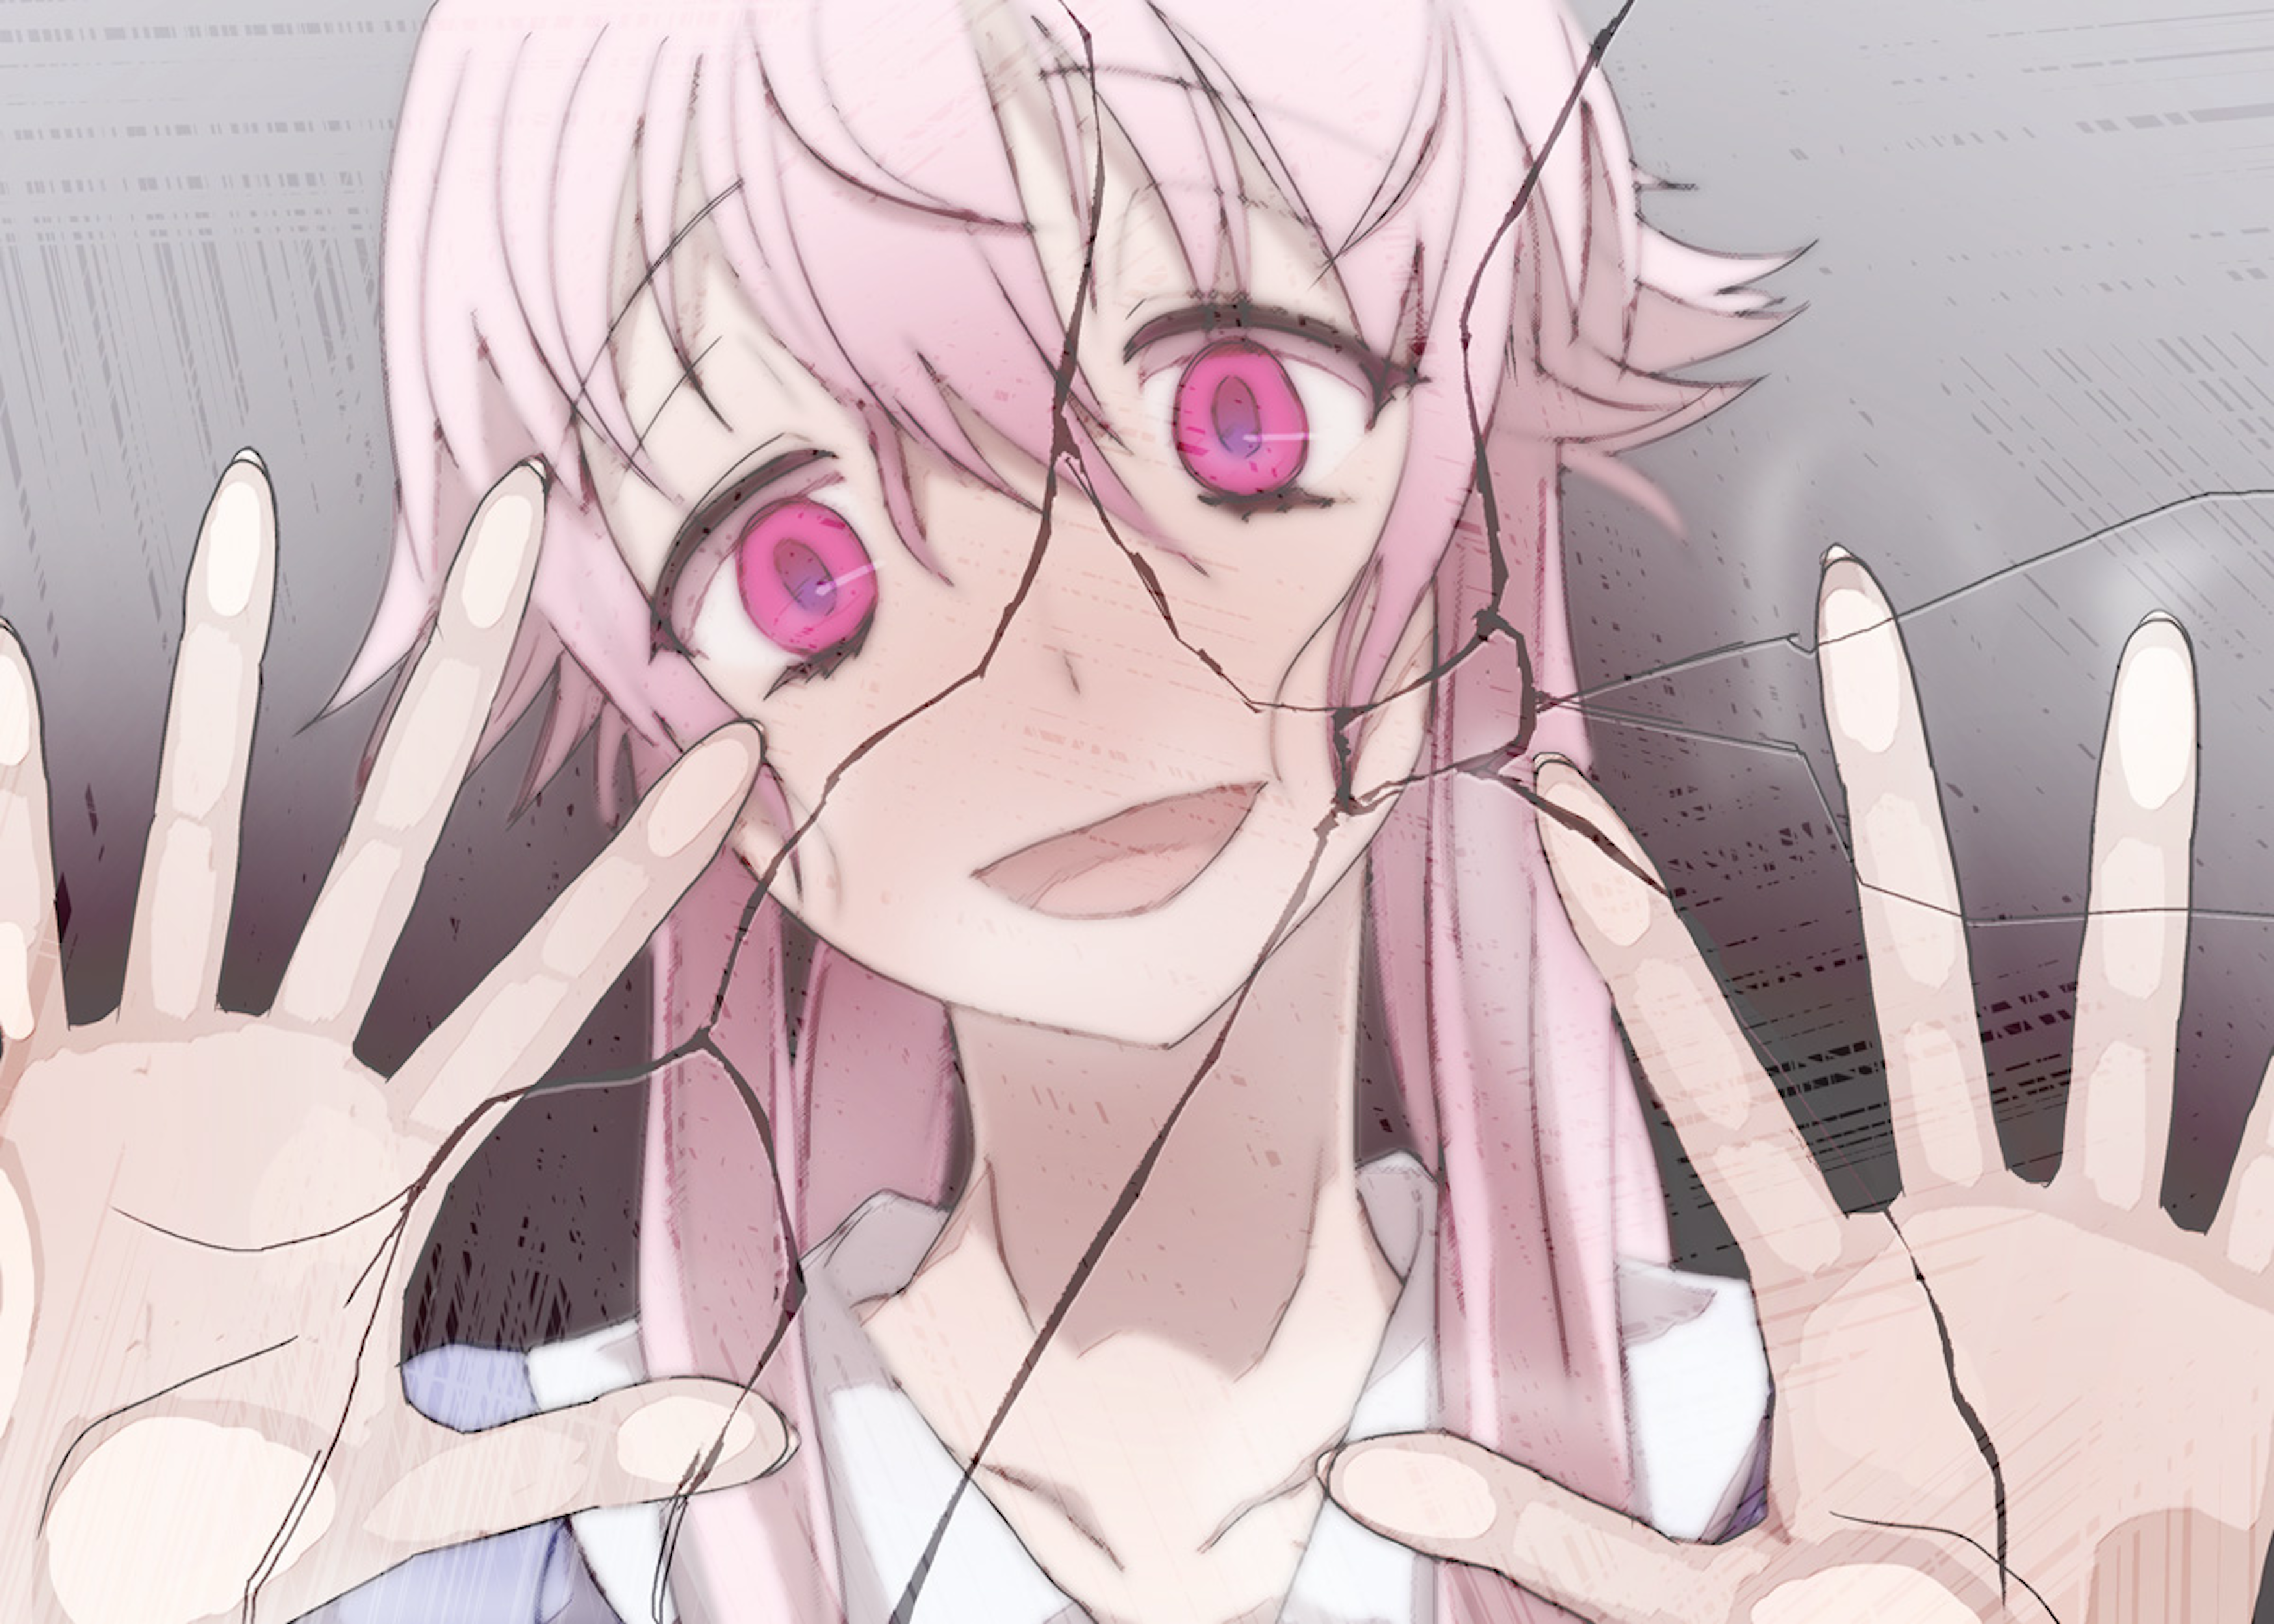 File:Yuno cropped ep.1.png